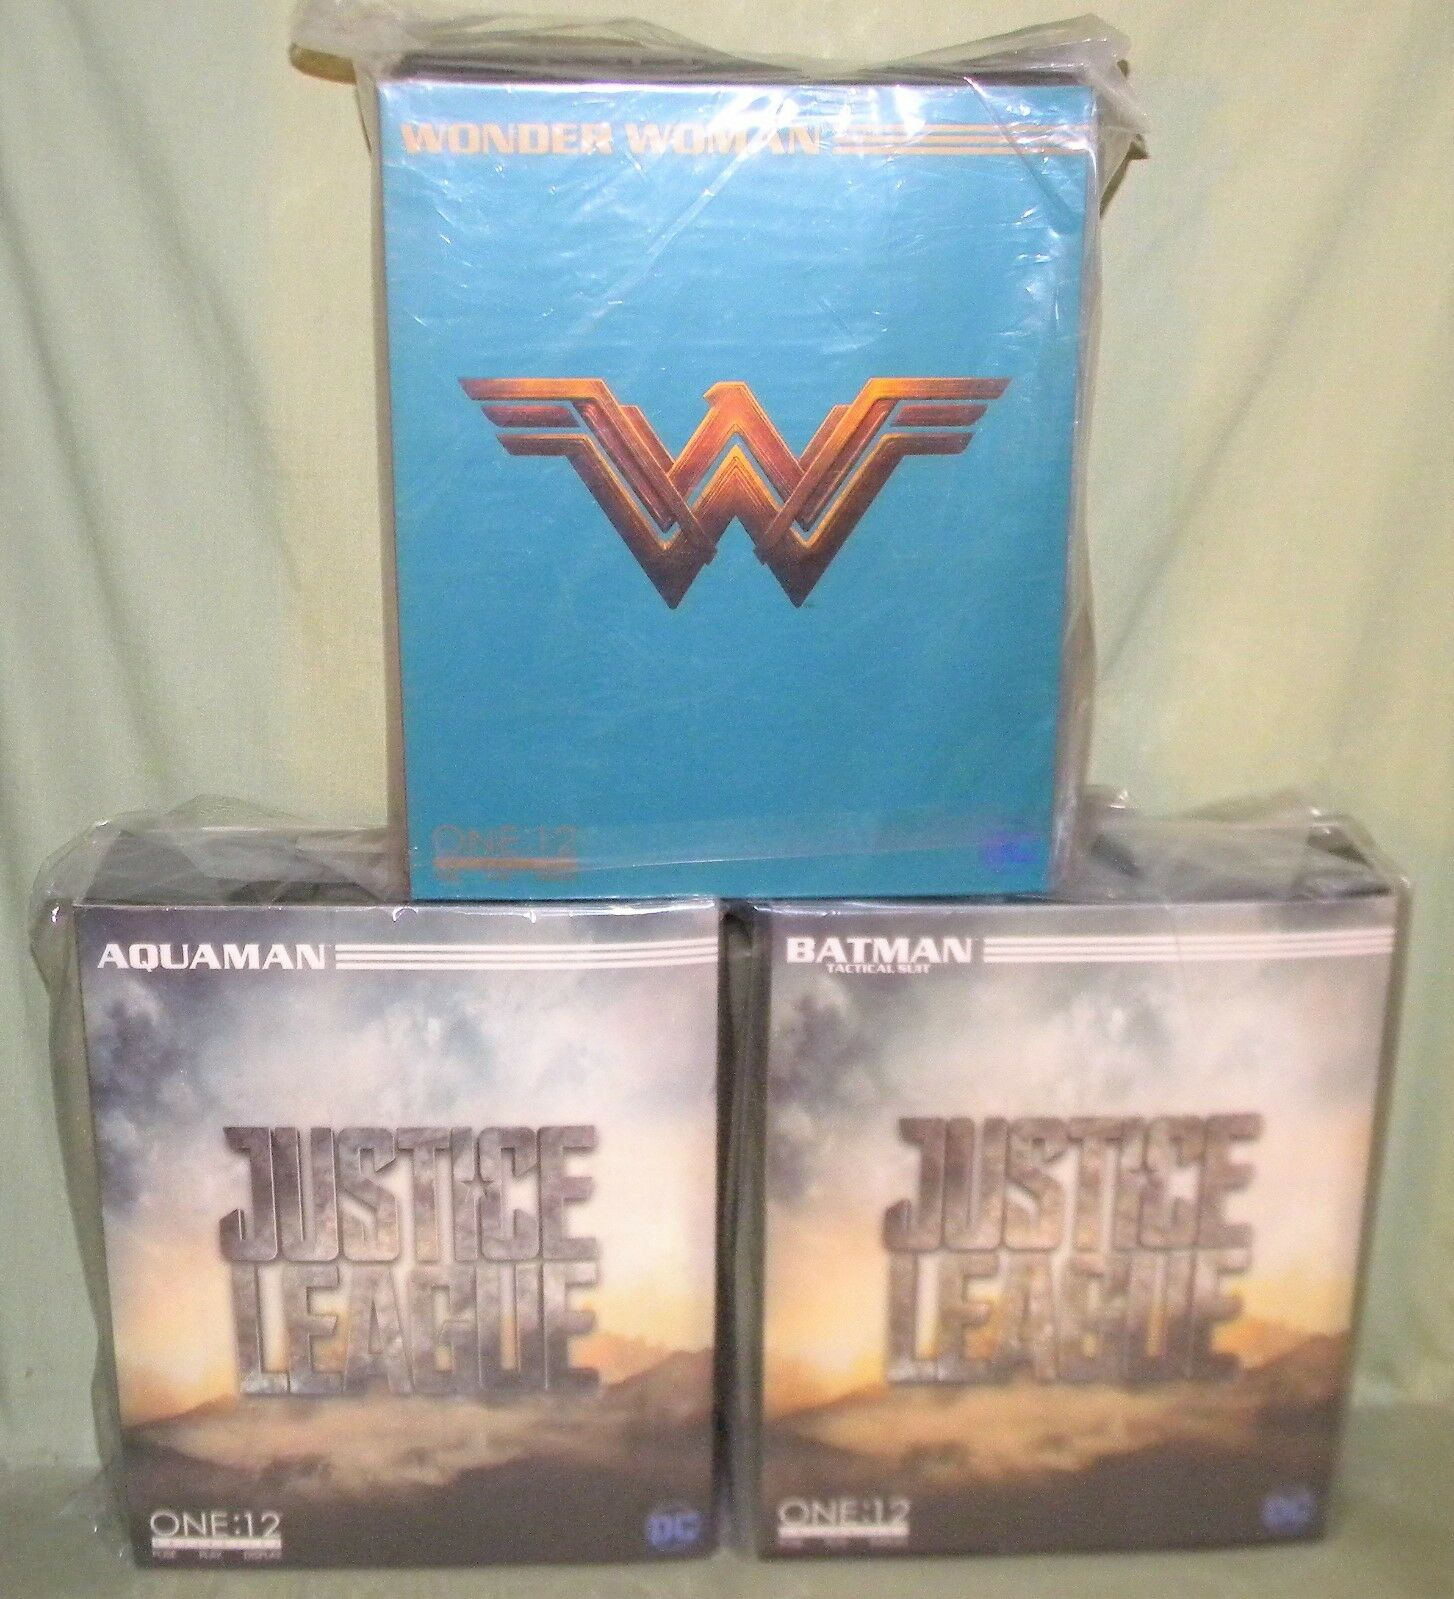 BATMAN AQUAMAN WONDER Frau Justice League One 12 Collective Figure MEZCO TOYZ